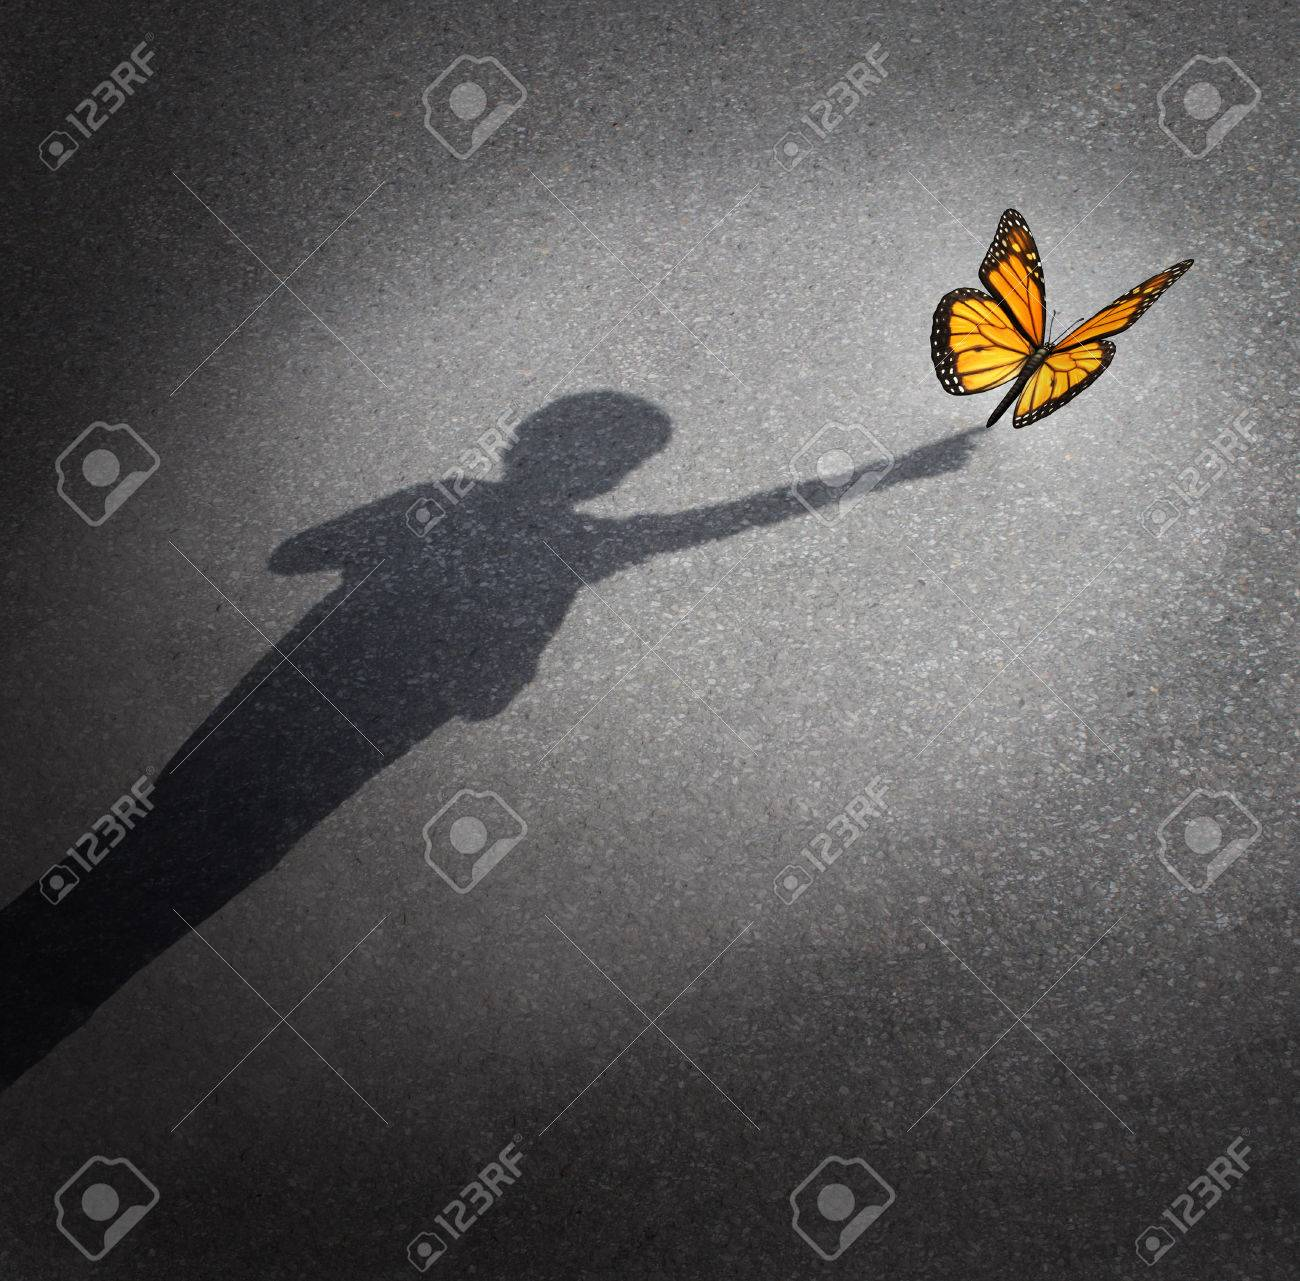 Wonder and discovery concept as a shadow of a child reaching out to touch a butterfly as an education and learning symbol of childhood curiosity and innocence towards nature and the world around them - 29457739